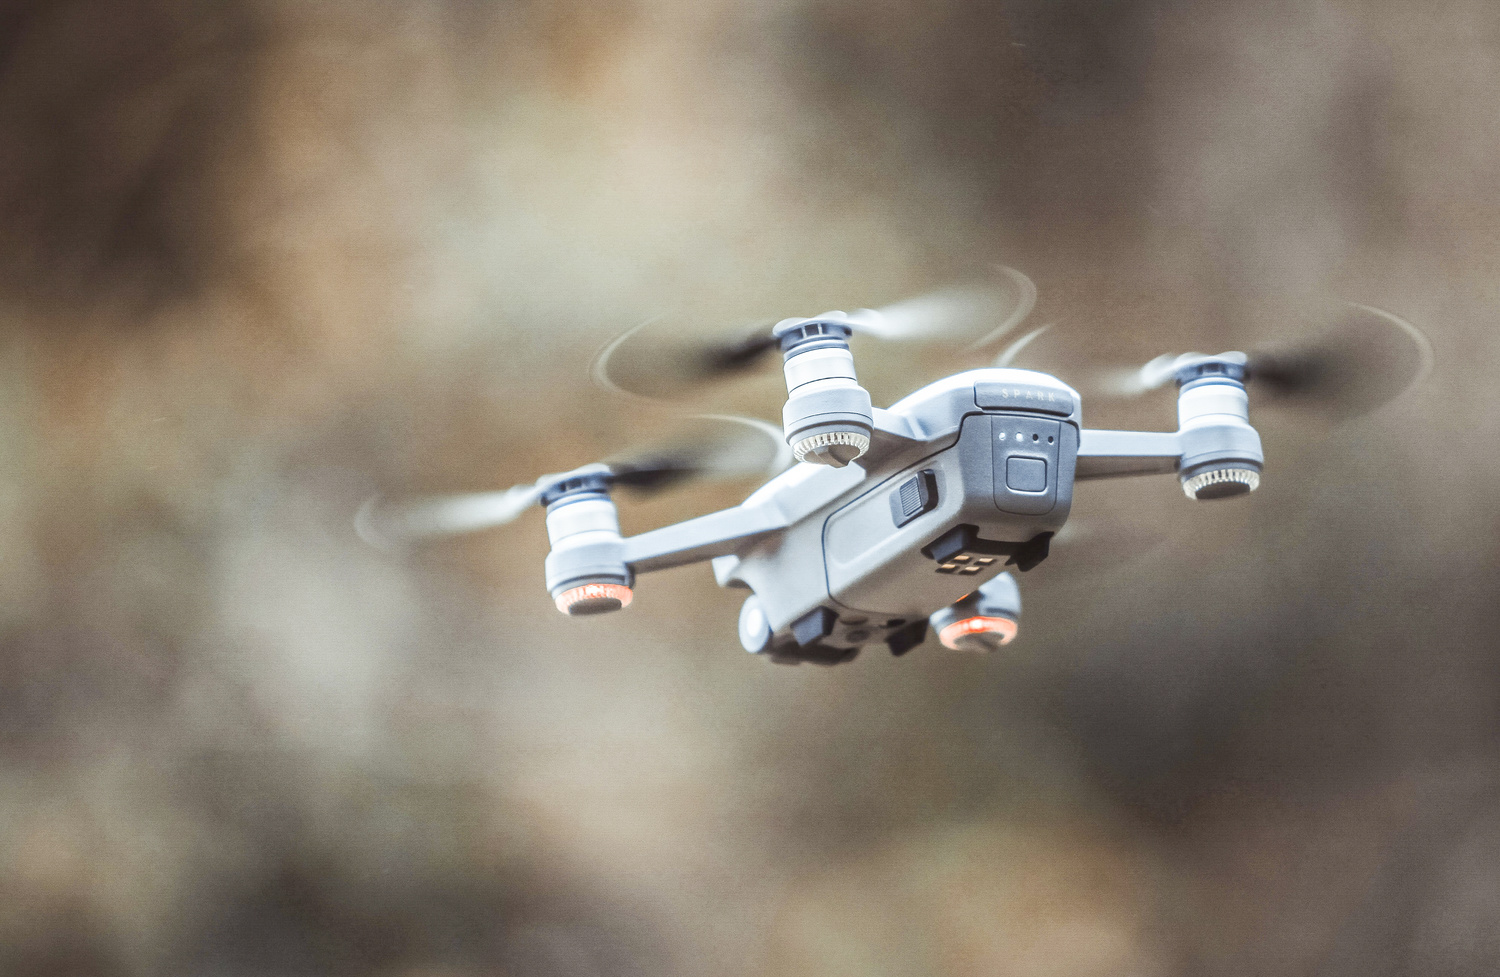 a photo of a drone mid-air in flight